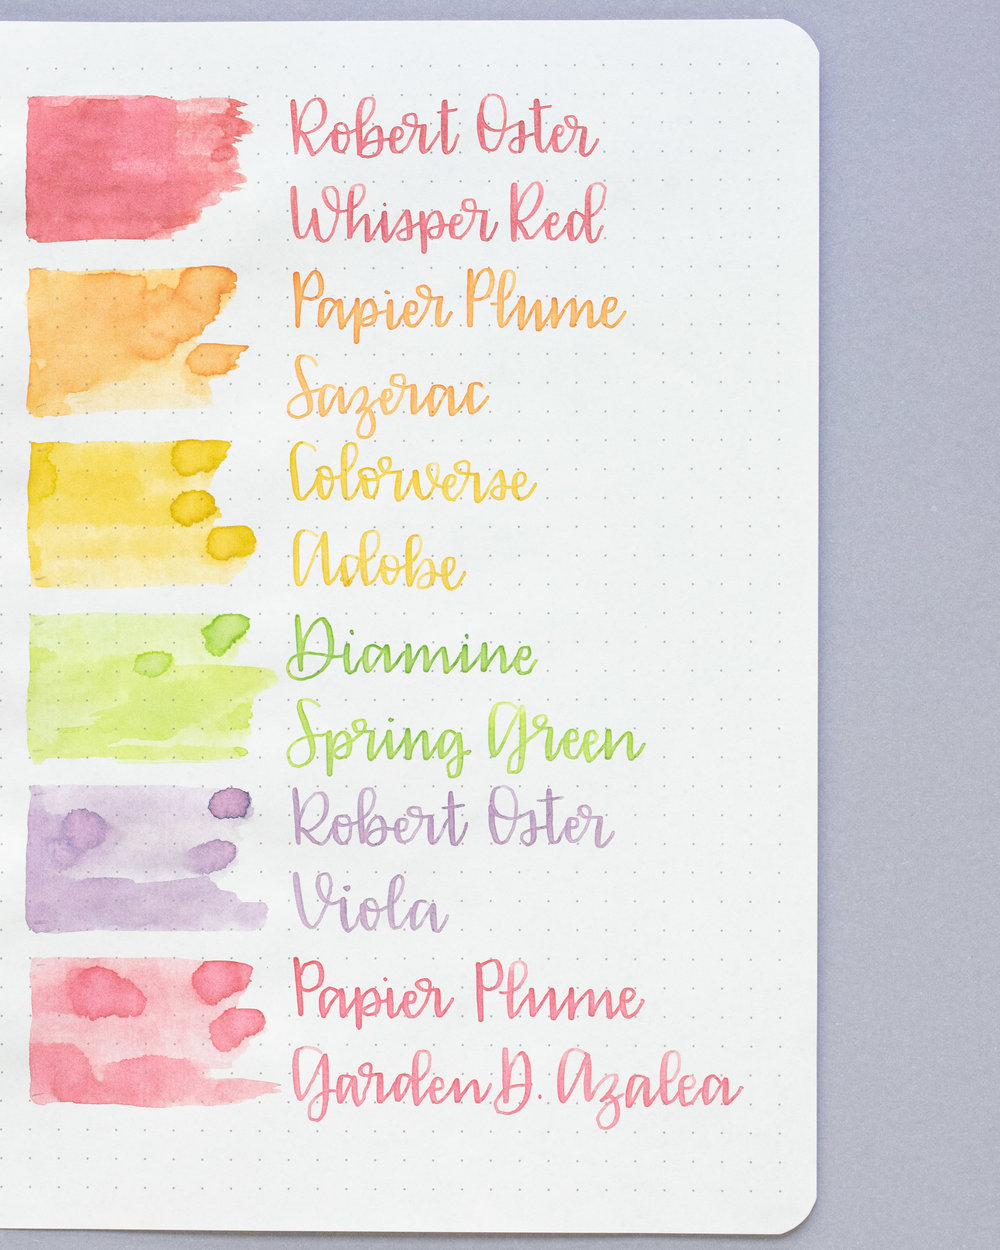 Pastels - This first one is perfect for Easter-pastel colors but still readable.